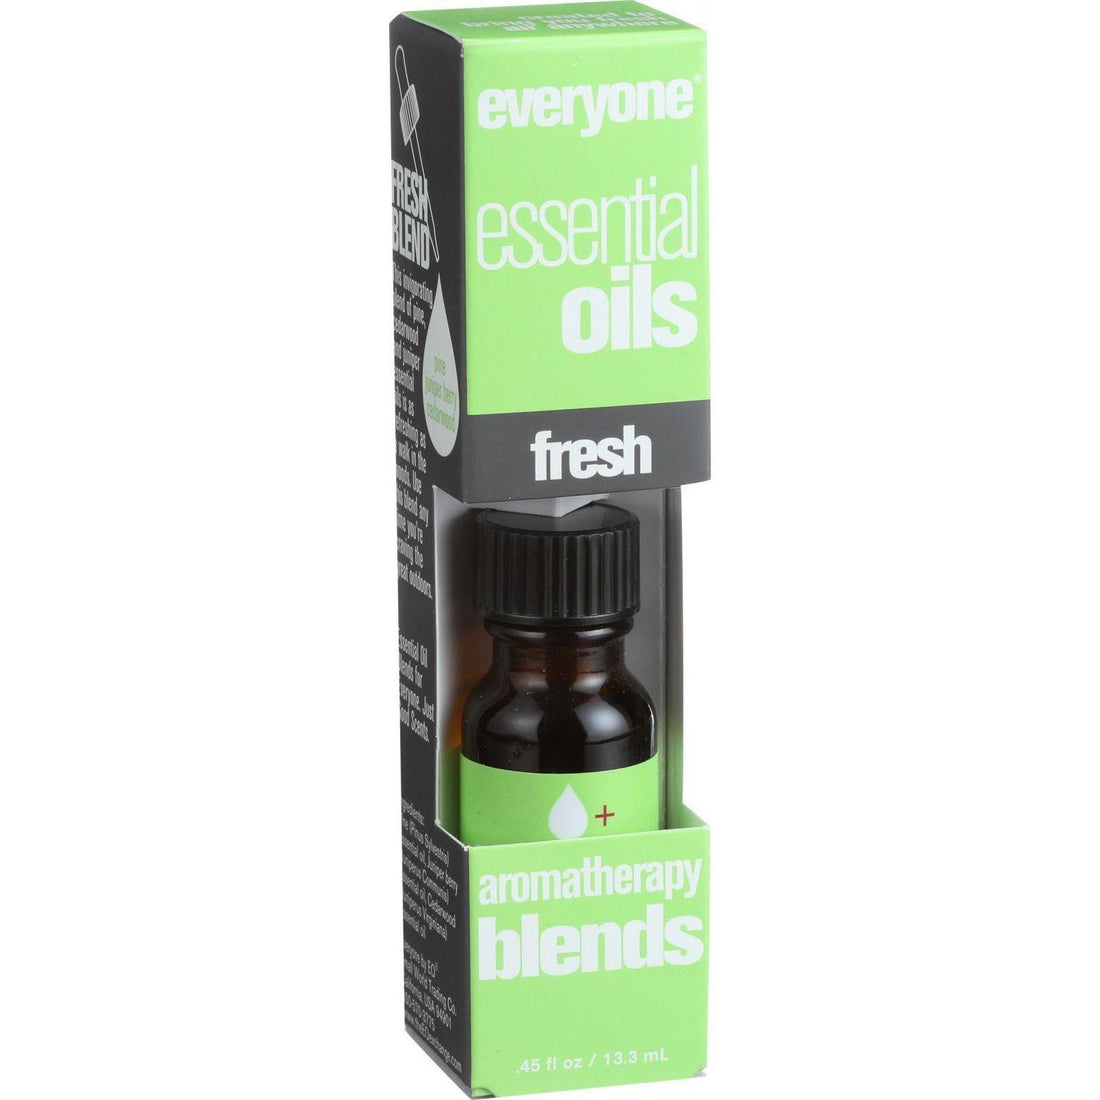 Mother Mantis: Eo Products Everyone Aromatherapy Blends - Essential Oil - Fresh - .5 Oz Eo Products